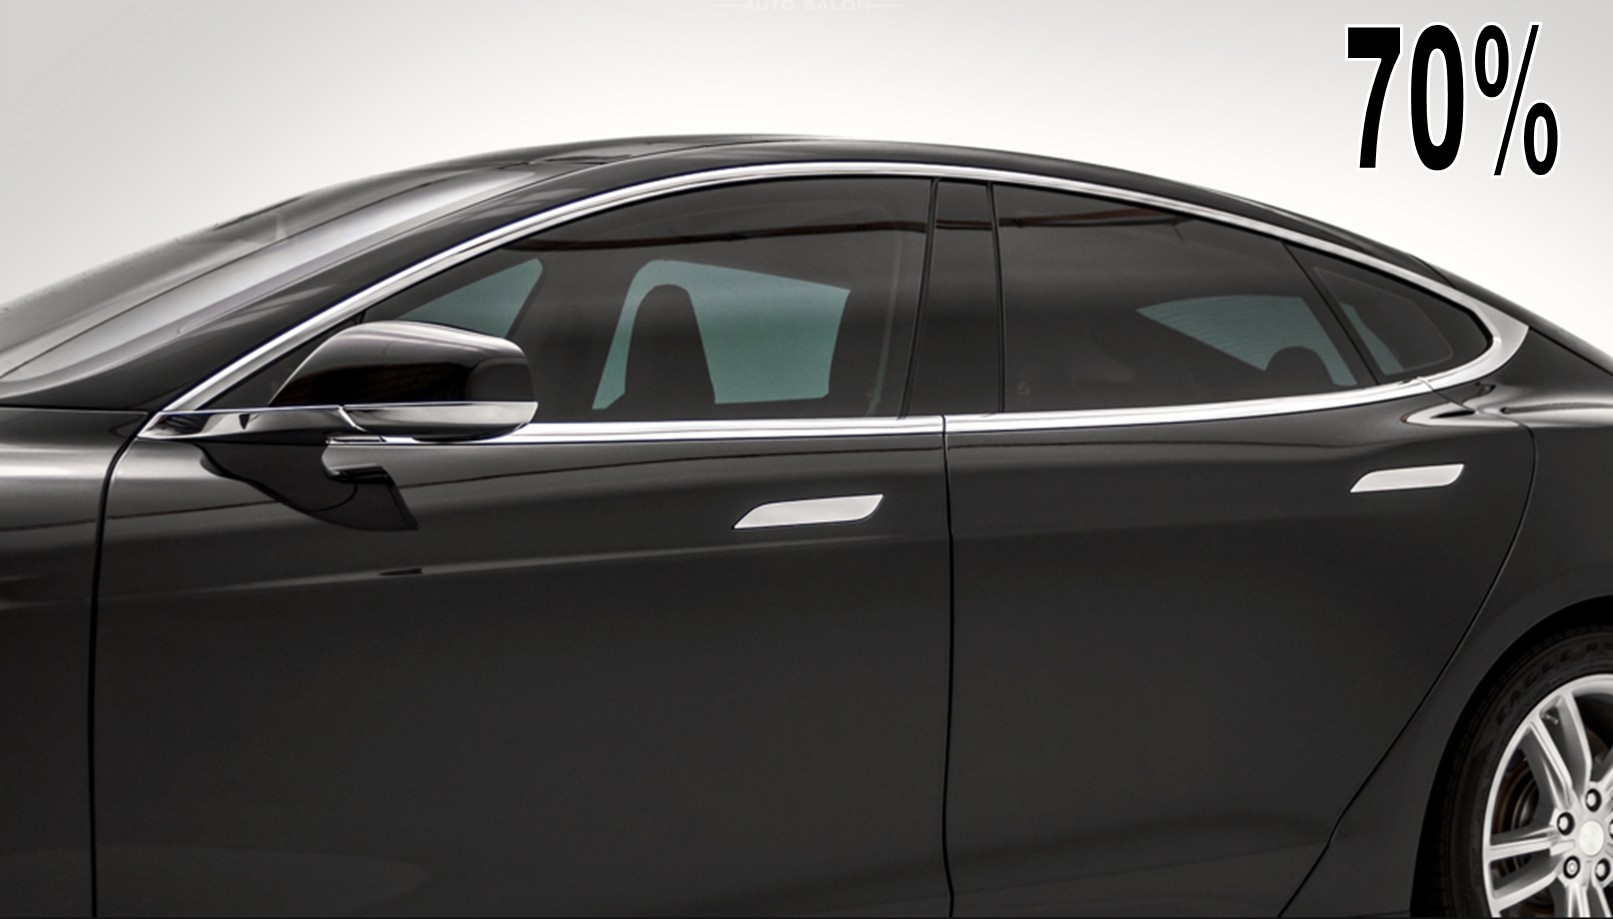 Premium 70 Limo Charcoal Dyed Polyester Car Window Tint Film